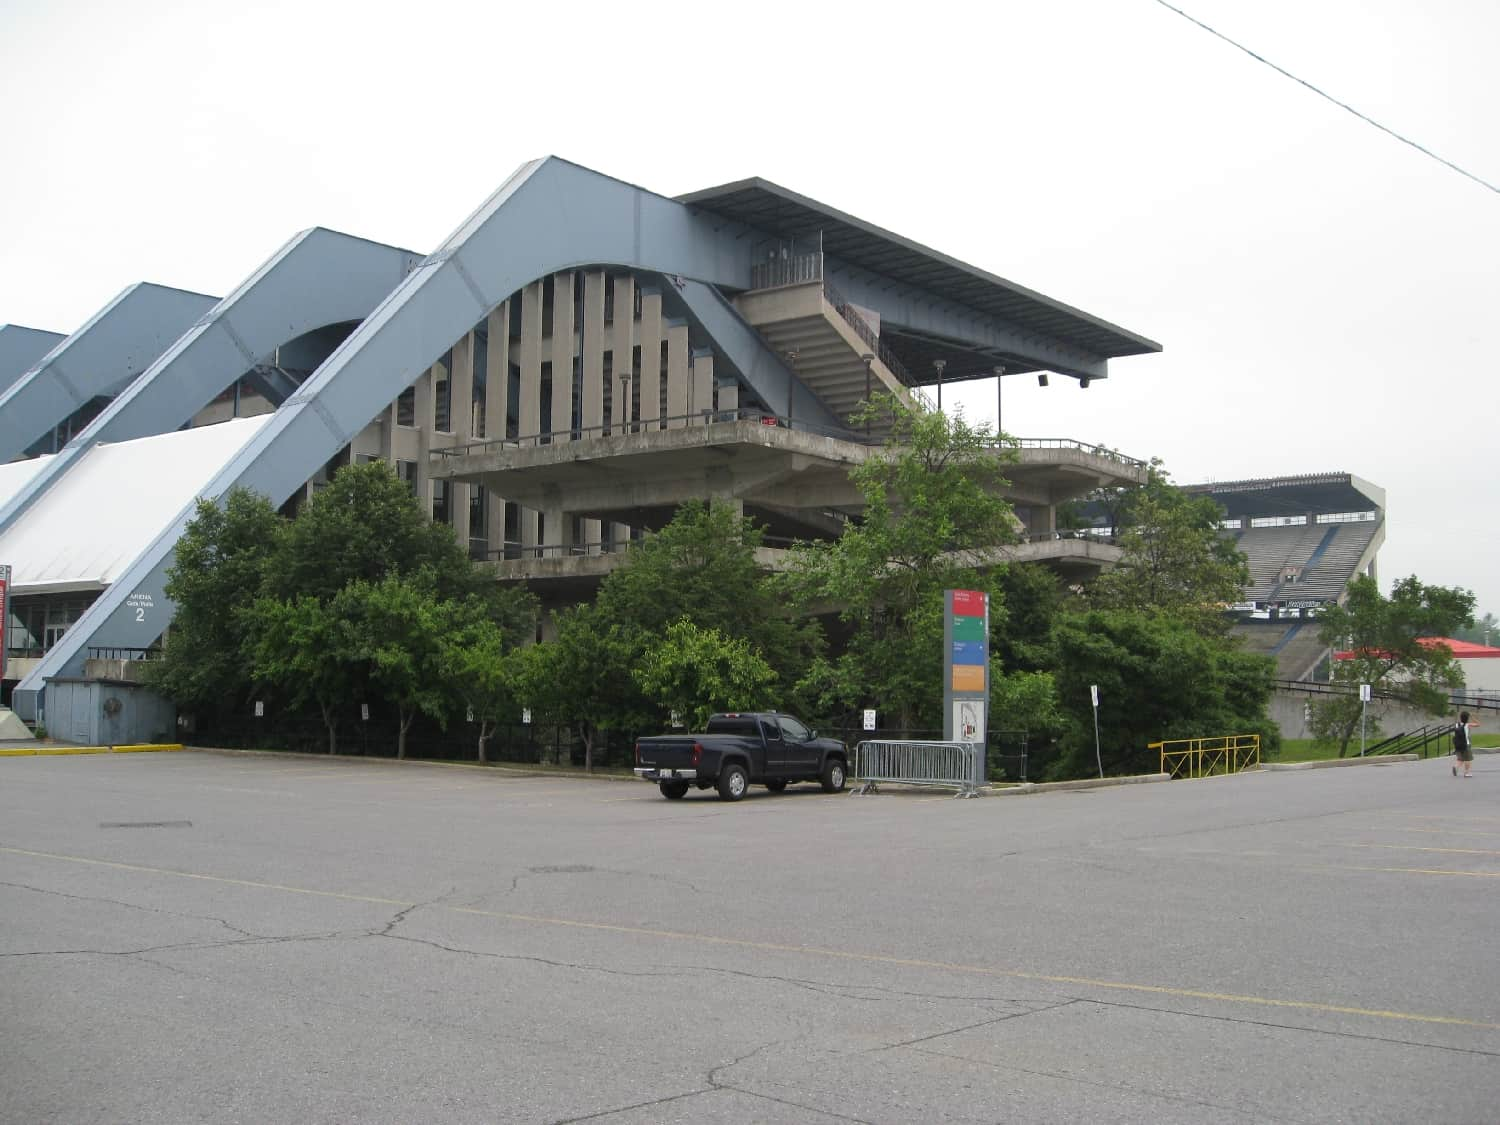 Ottawa Civic Centre